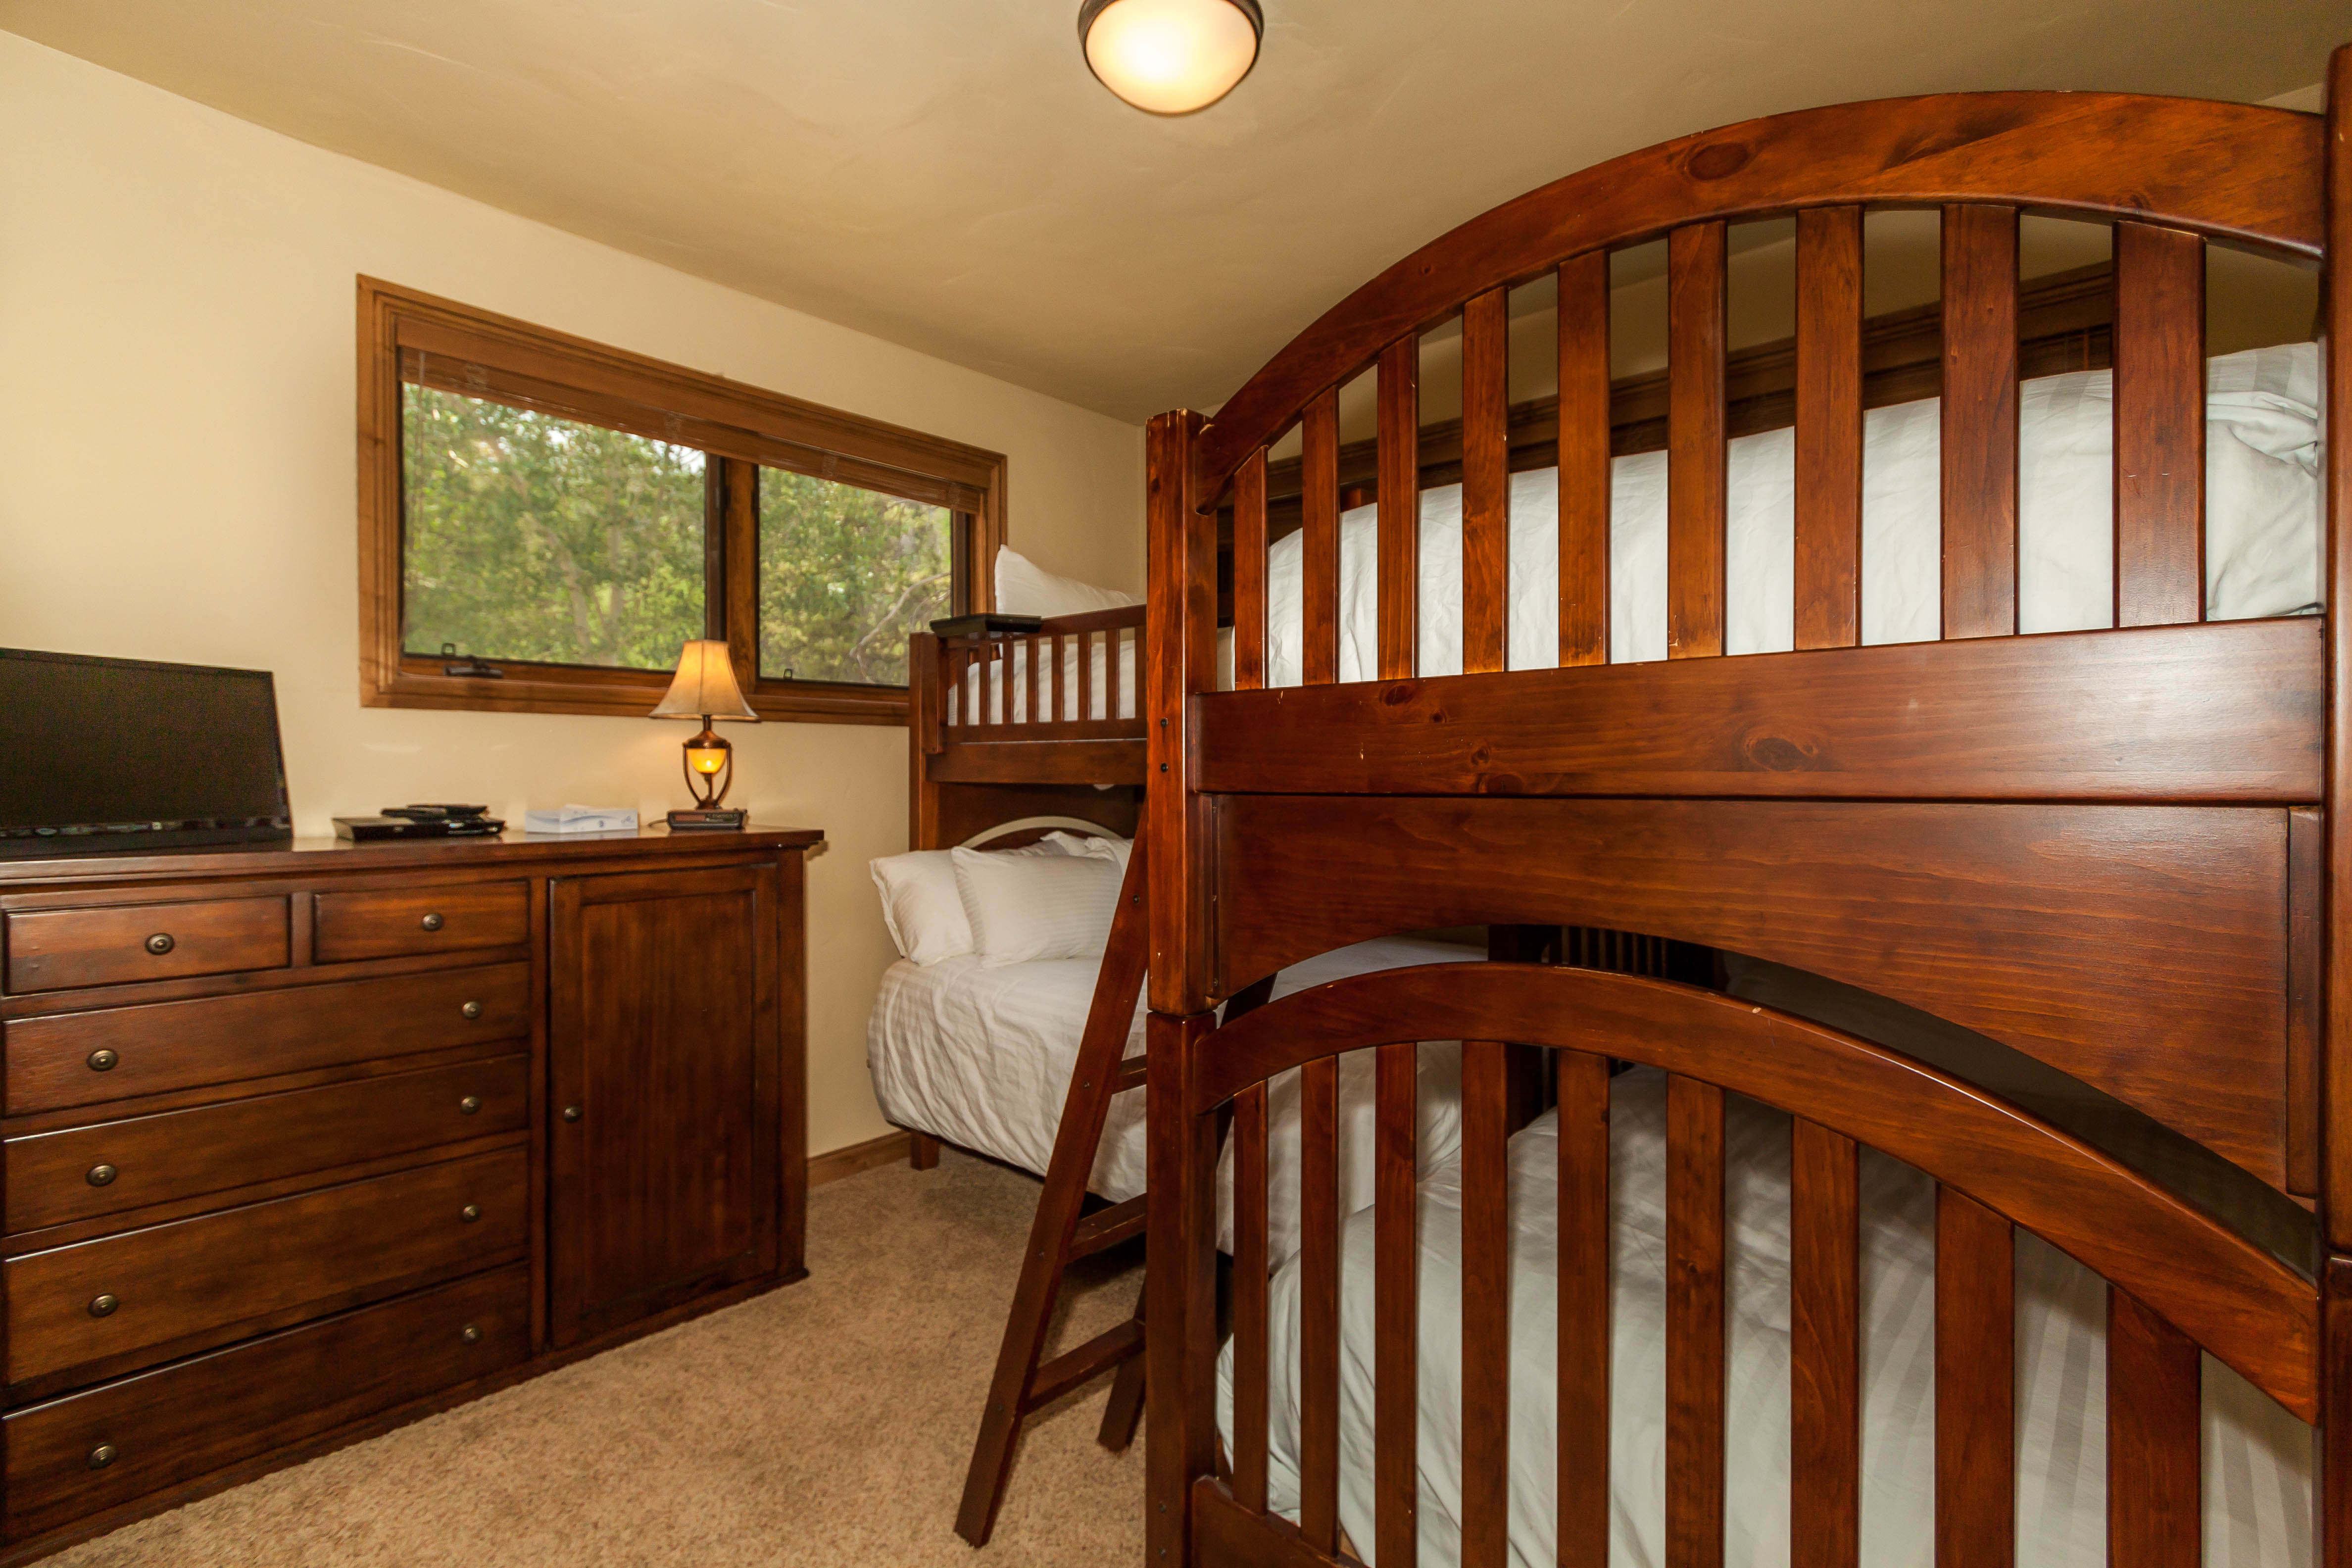 The second guest bedroom features two sets of bunk beds with Ivory White Bedding and a flat screen TV.